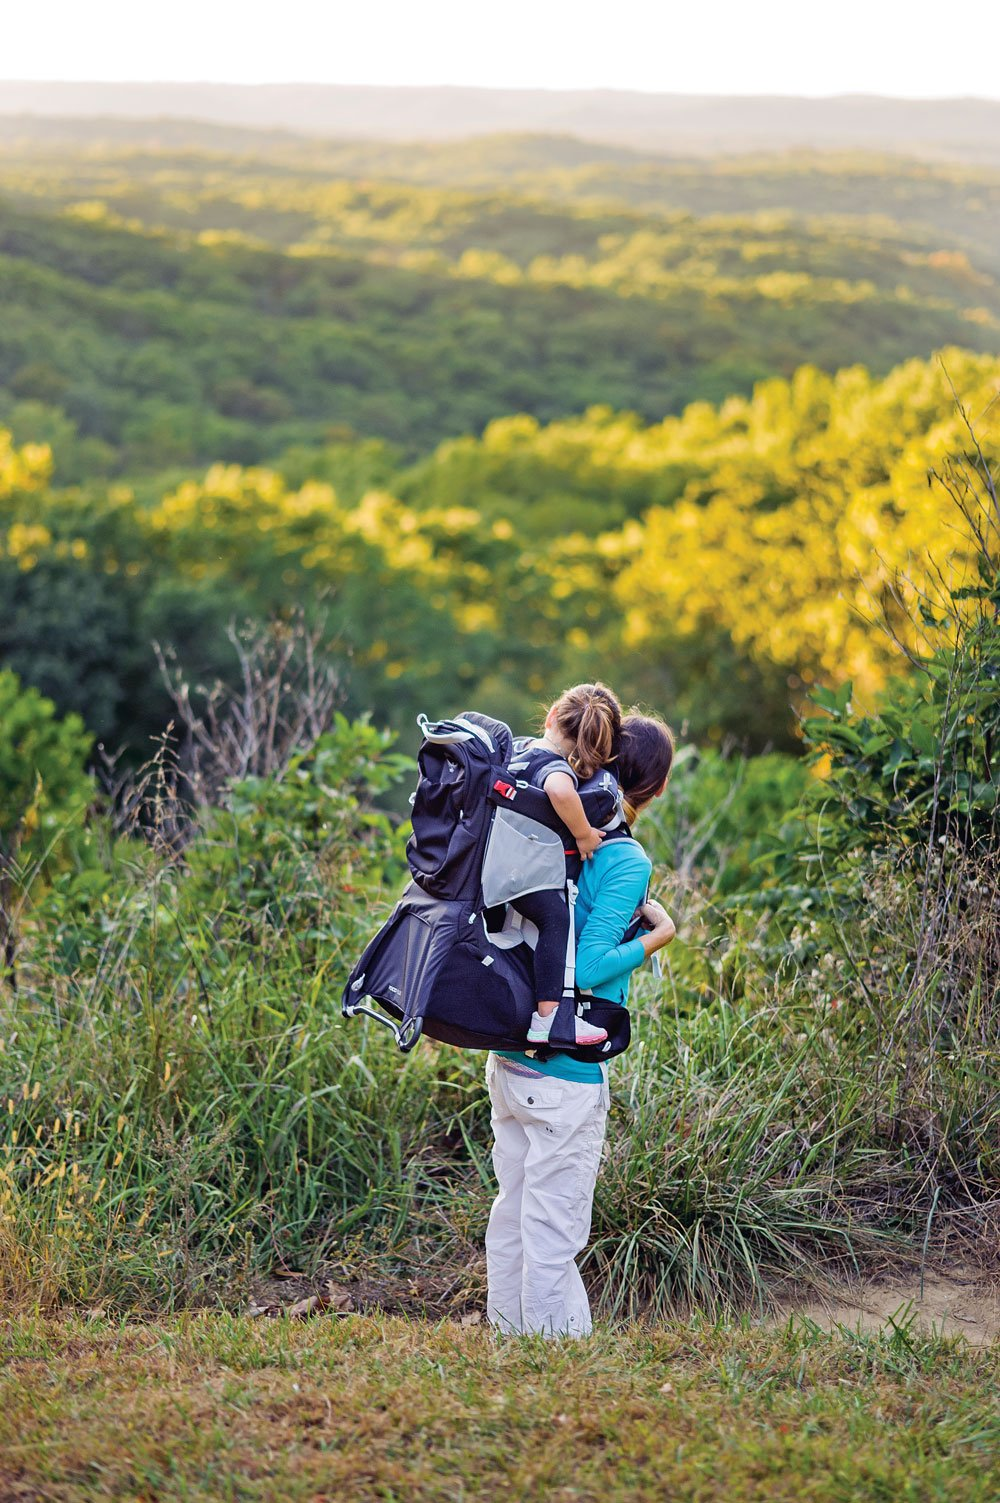 Backpack carrier for a long walk or hike